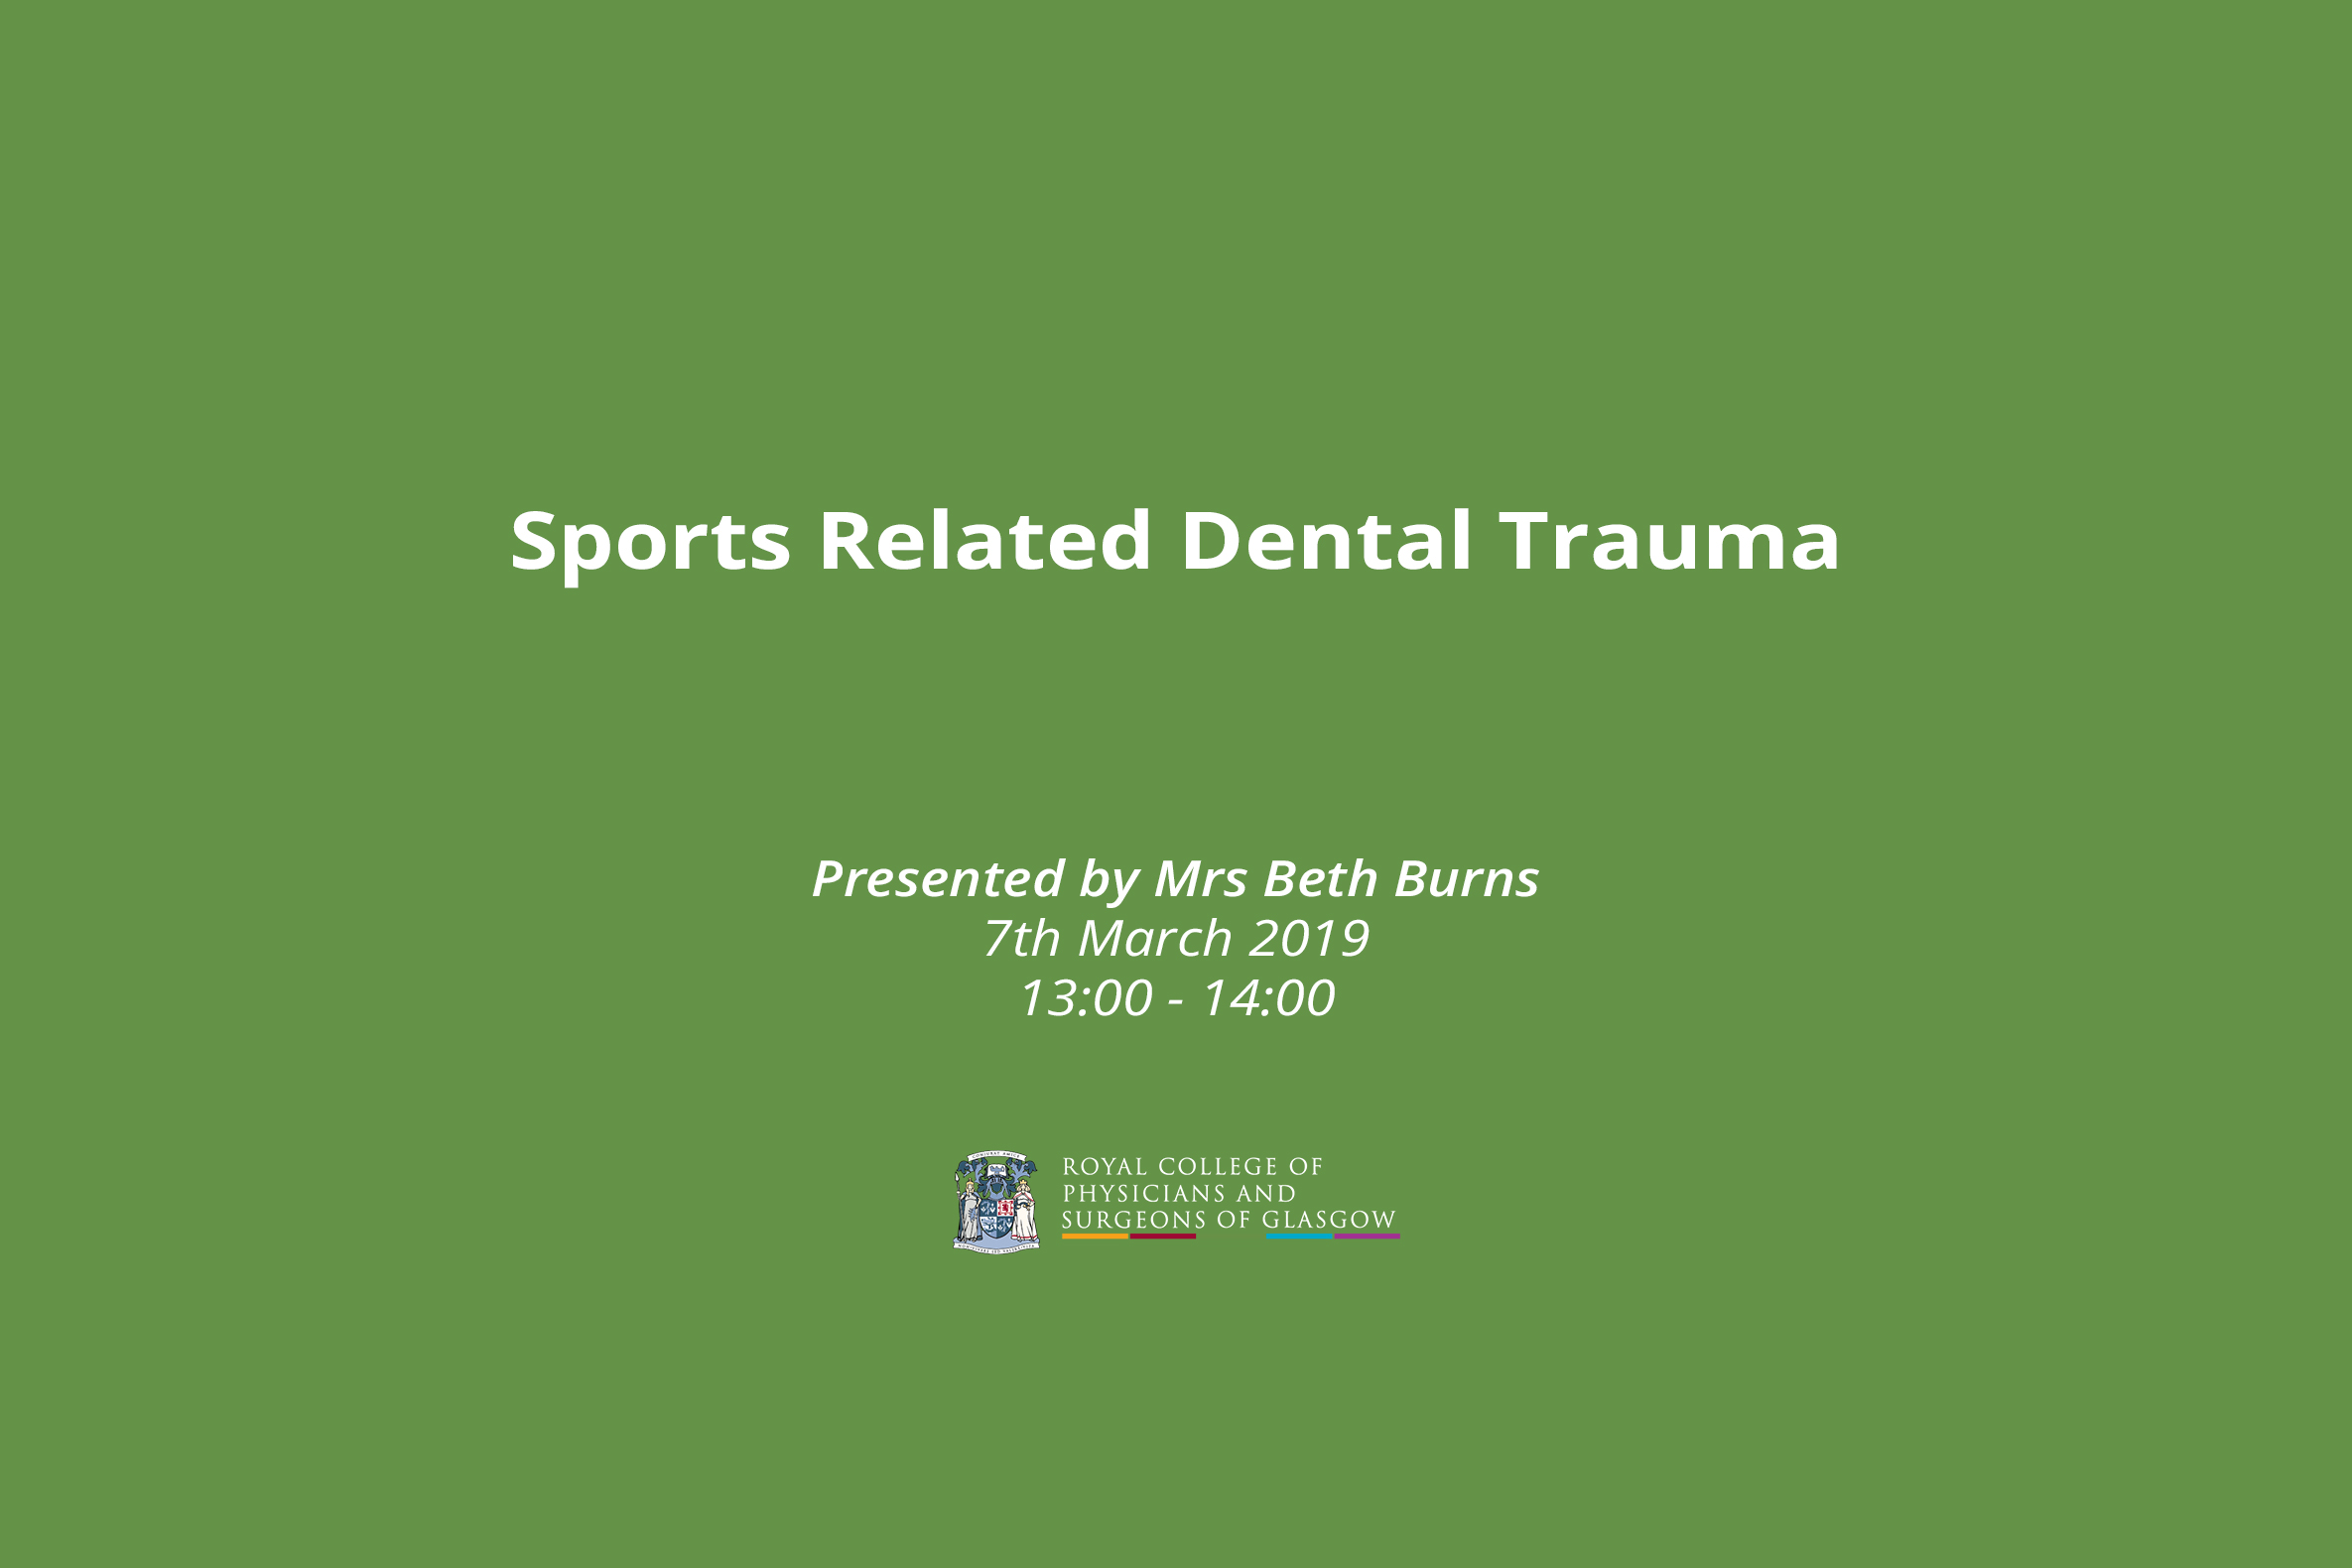 Sports Related Dental Trauma